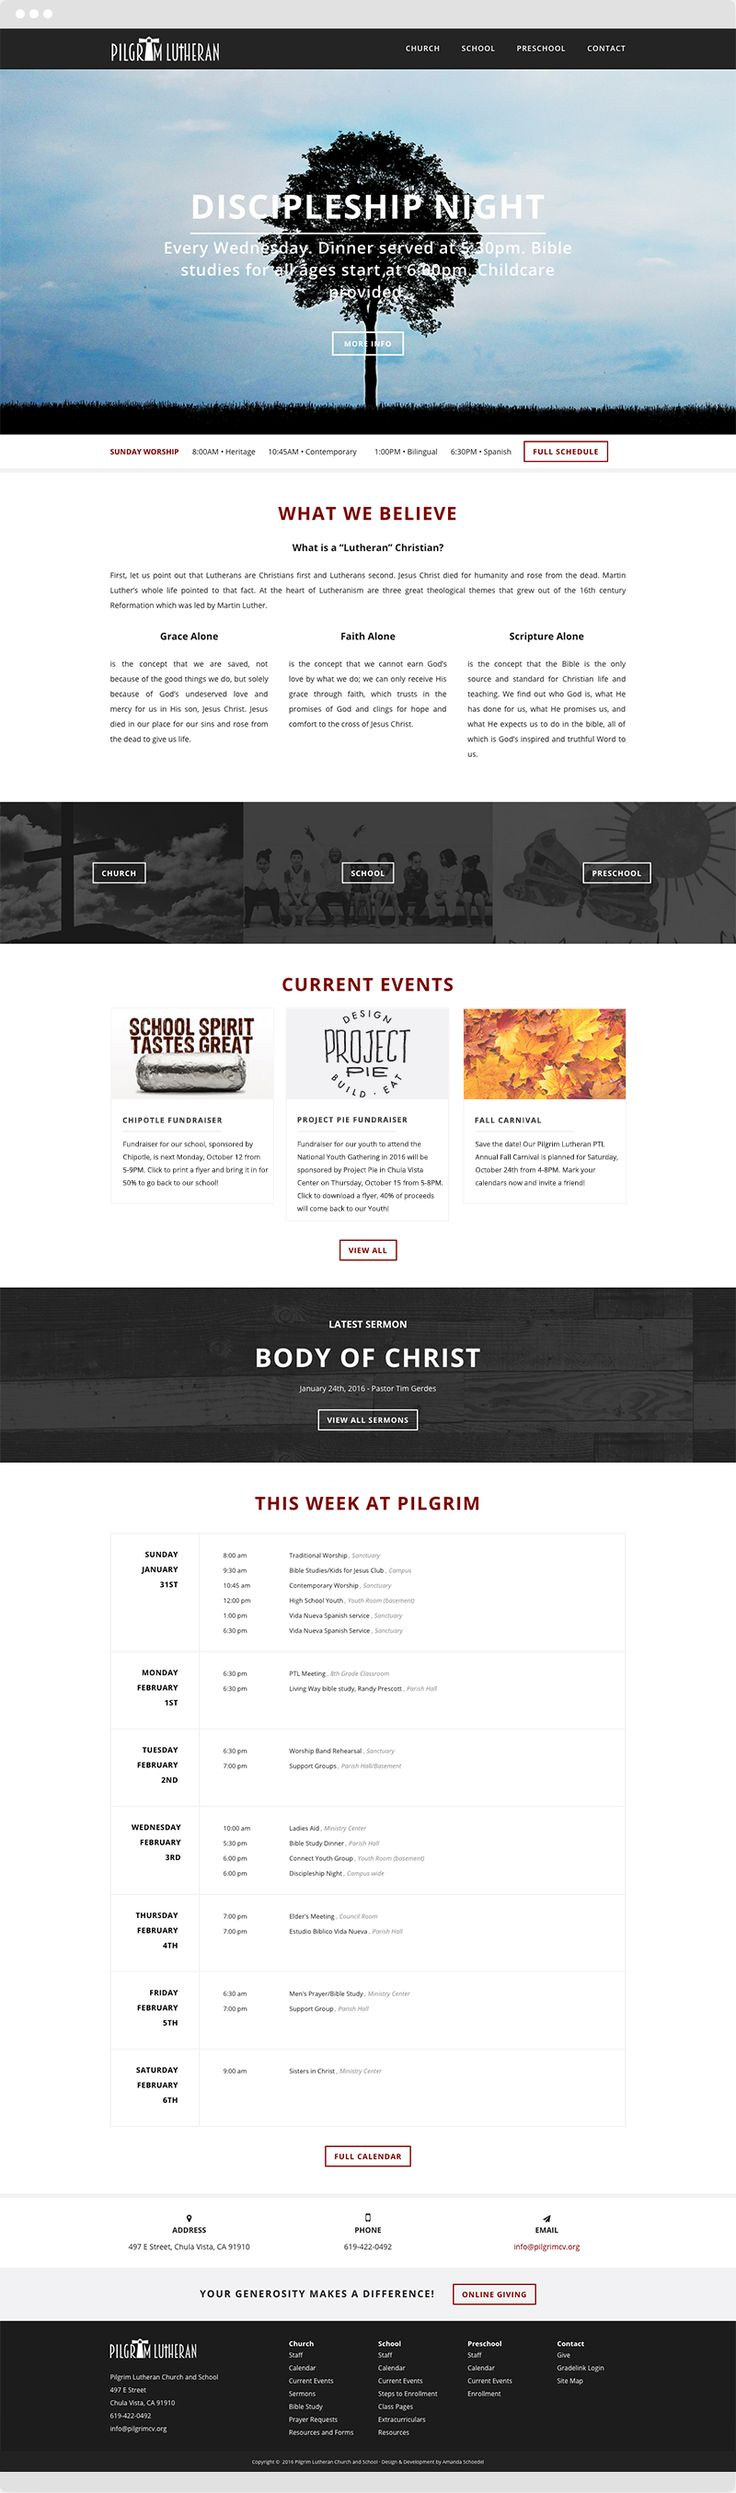 pilgrim lutheran church and school responsive wordpress website church website design school